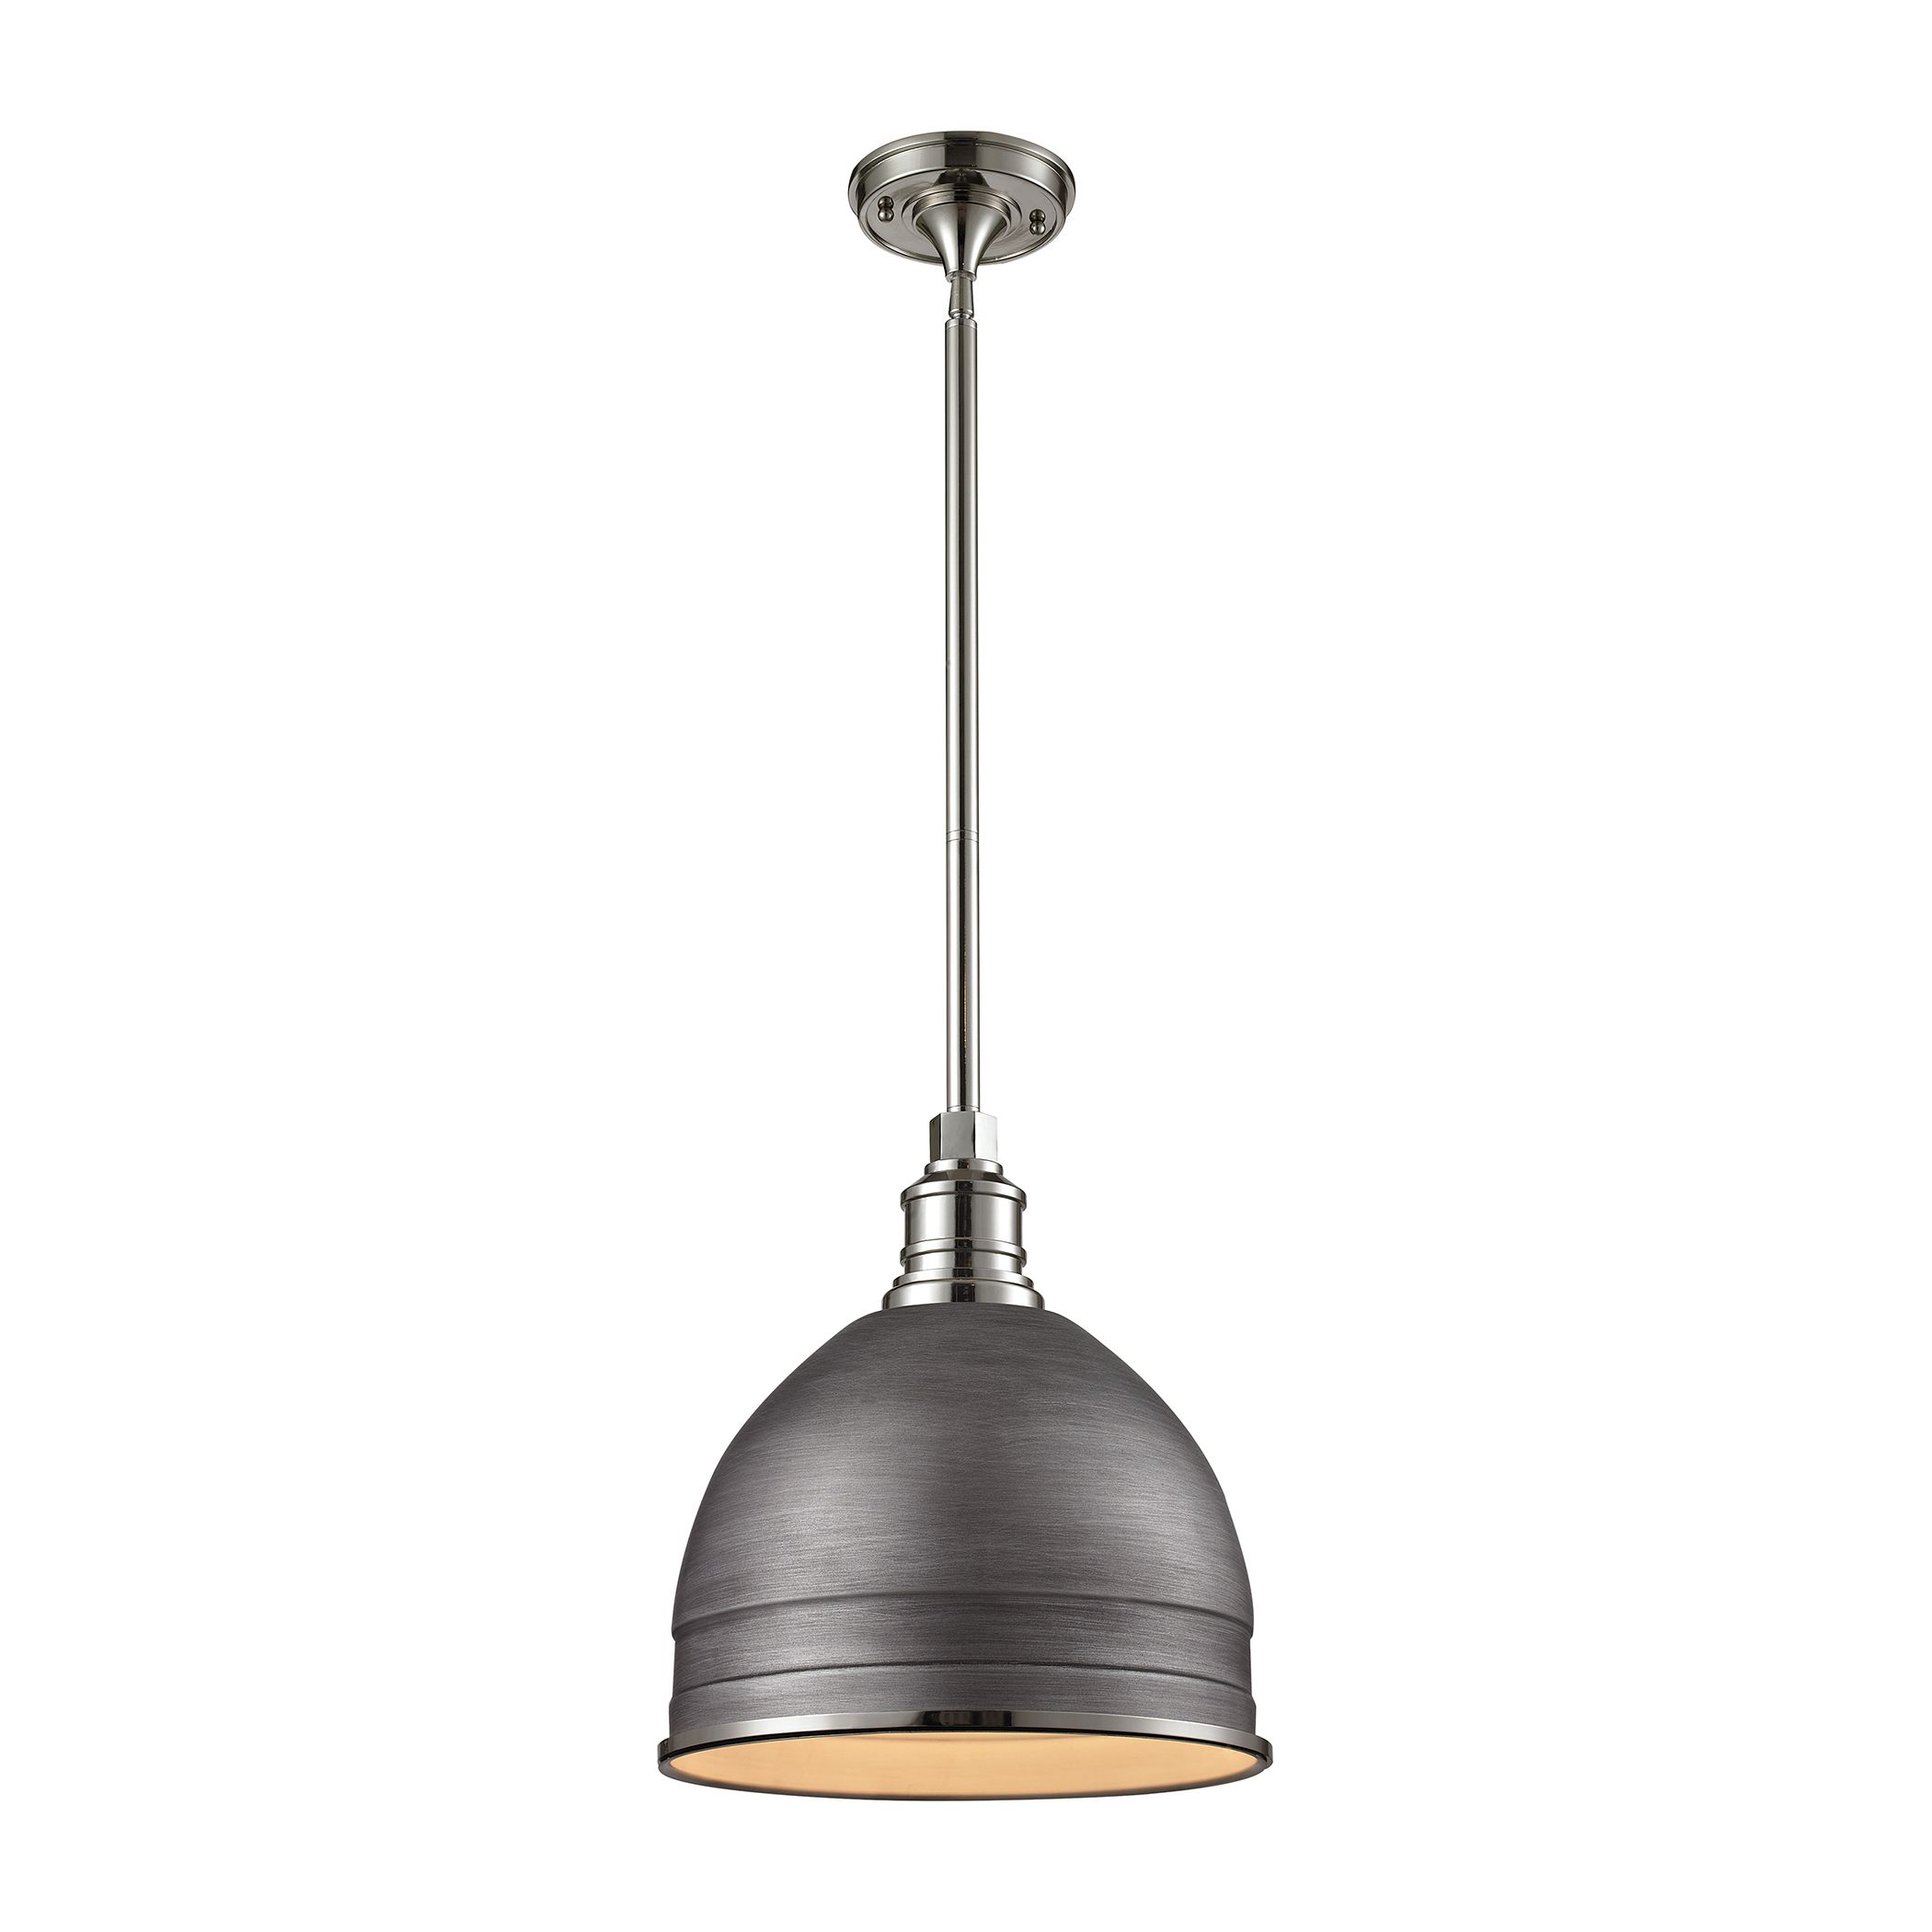 1 Light Carolton Pendant in Weathered Zinc and Polished Nickel